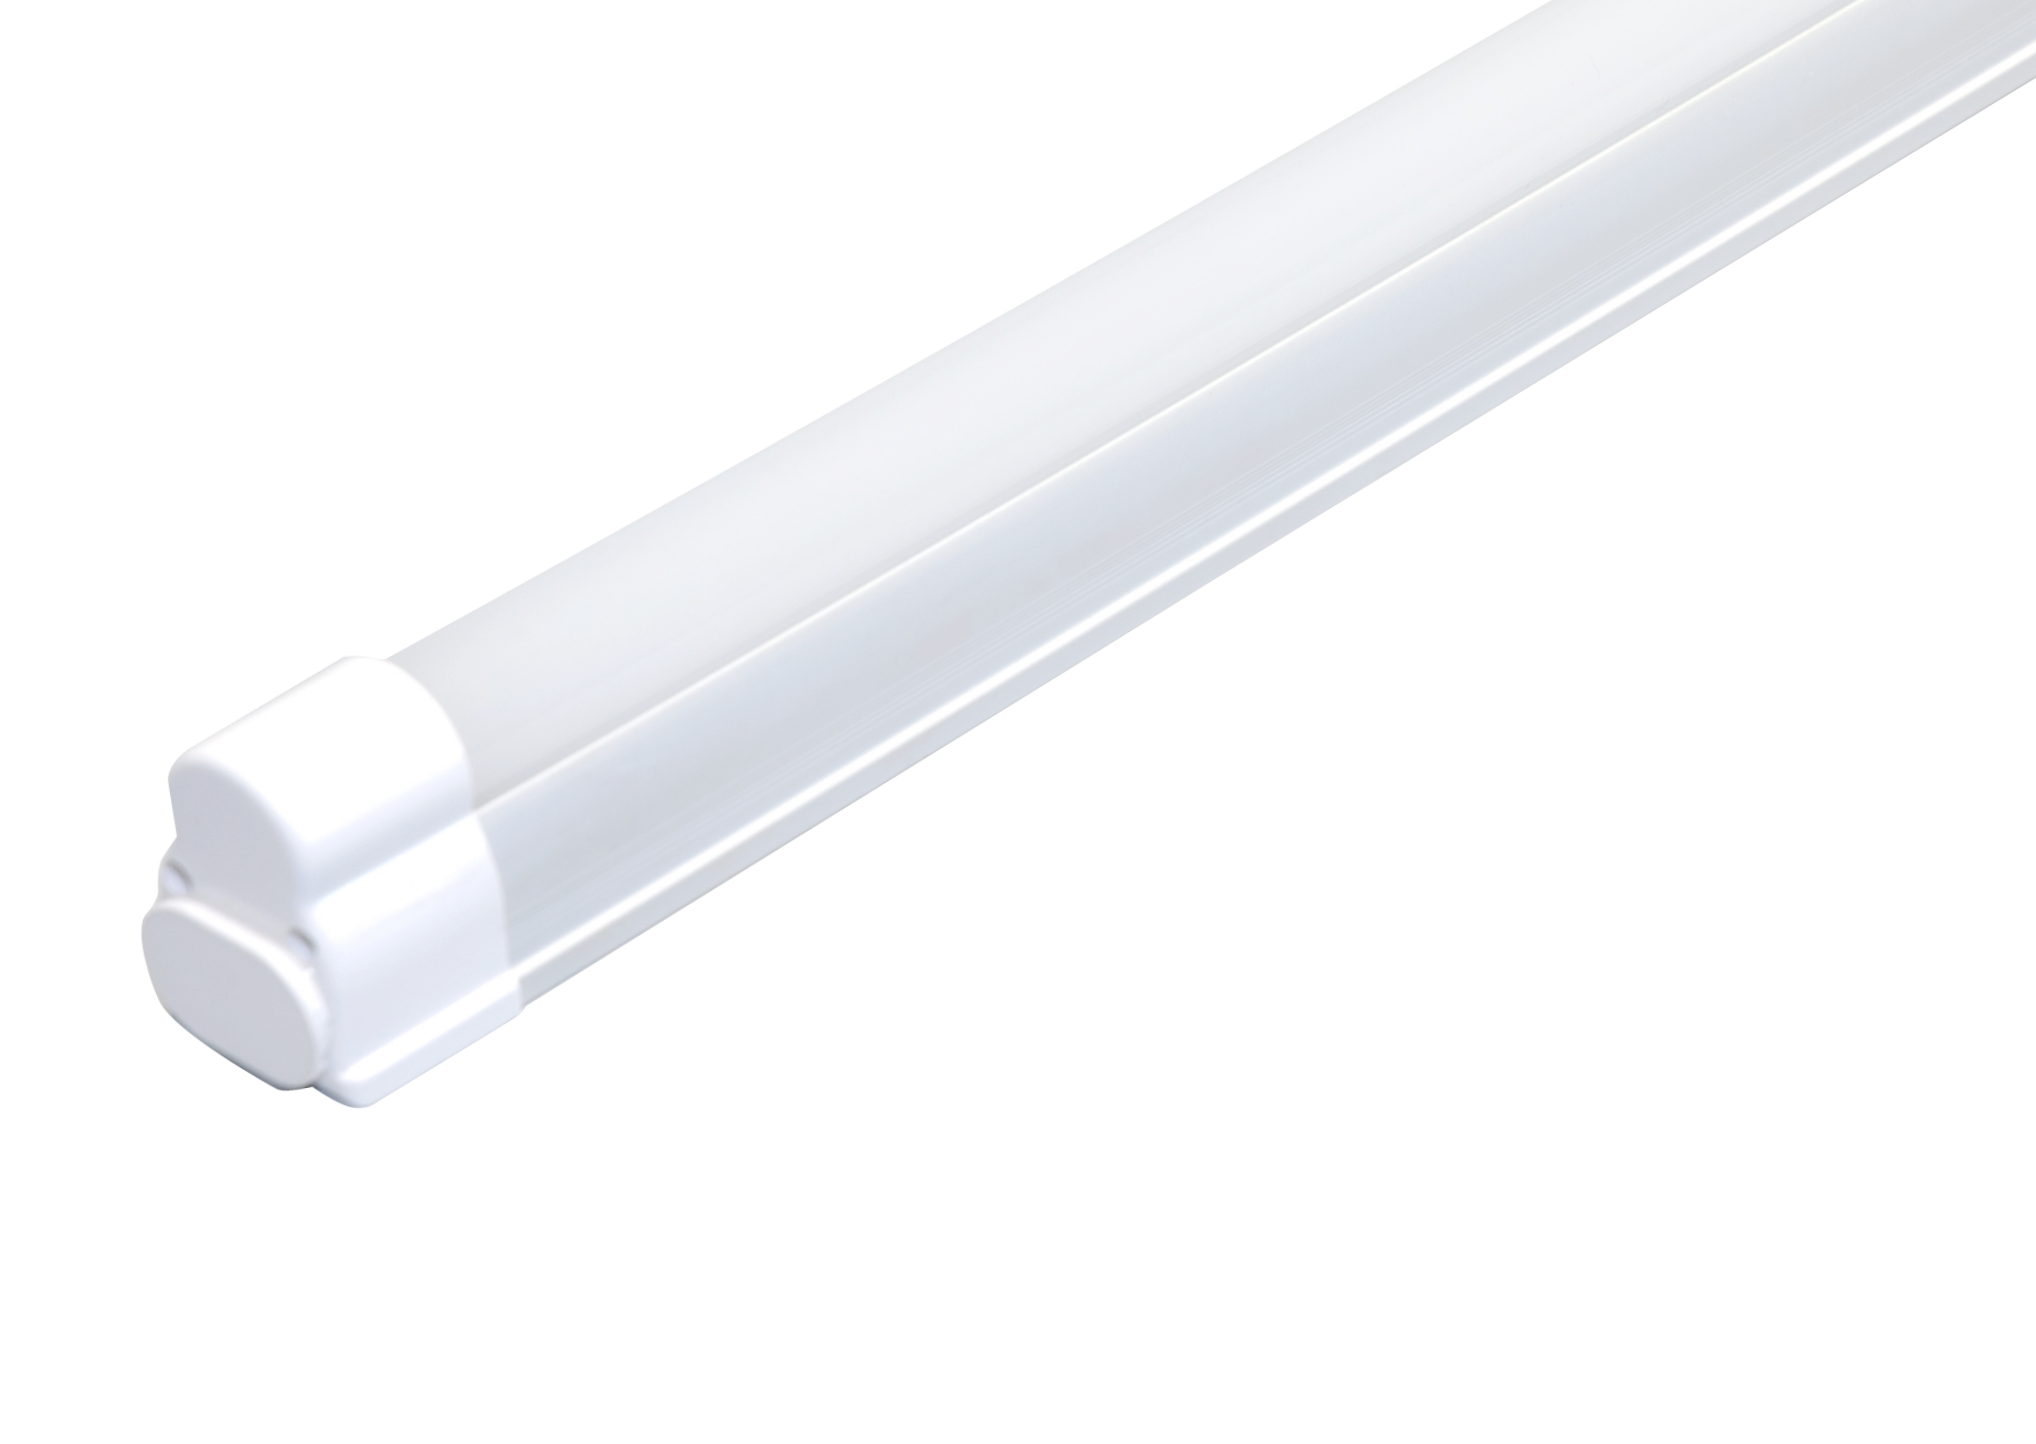 Title image of LCT5 LED FIXTURE